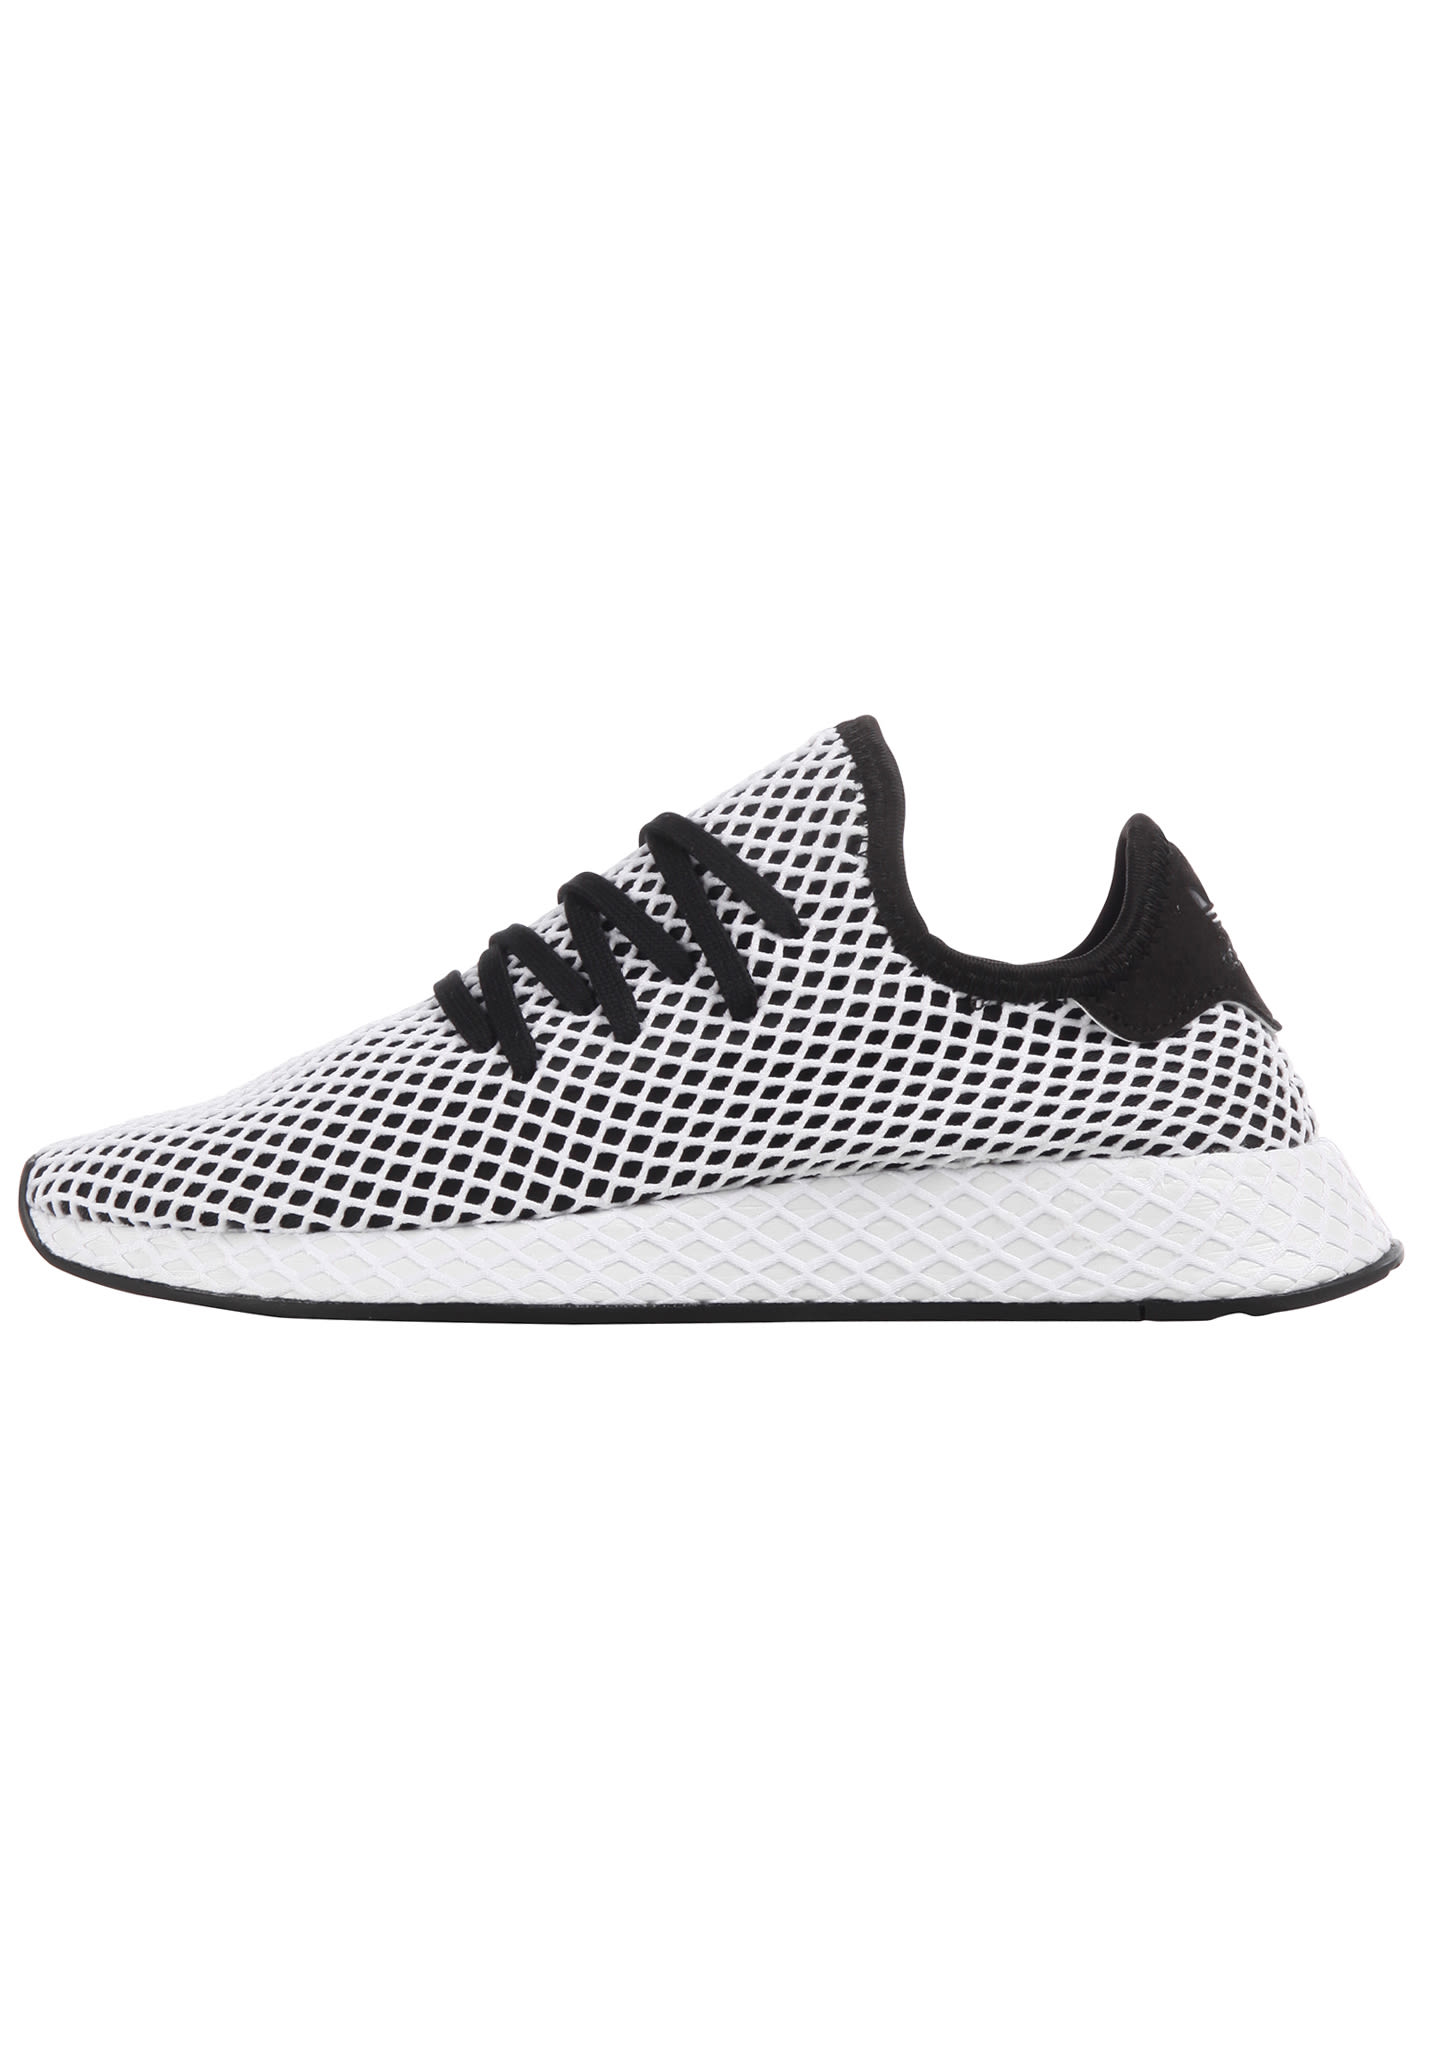 a7735e2d0d4c17 ADIDAS ORIGINALS Deerupt Runner - Sneakers for Men - Black - Planet Sports